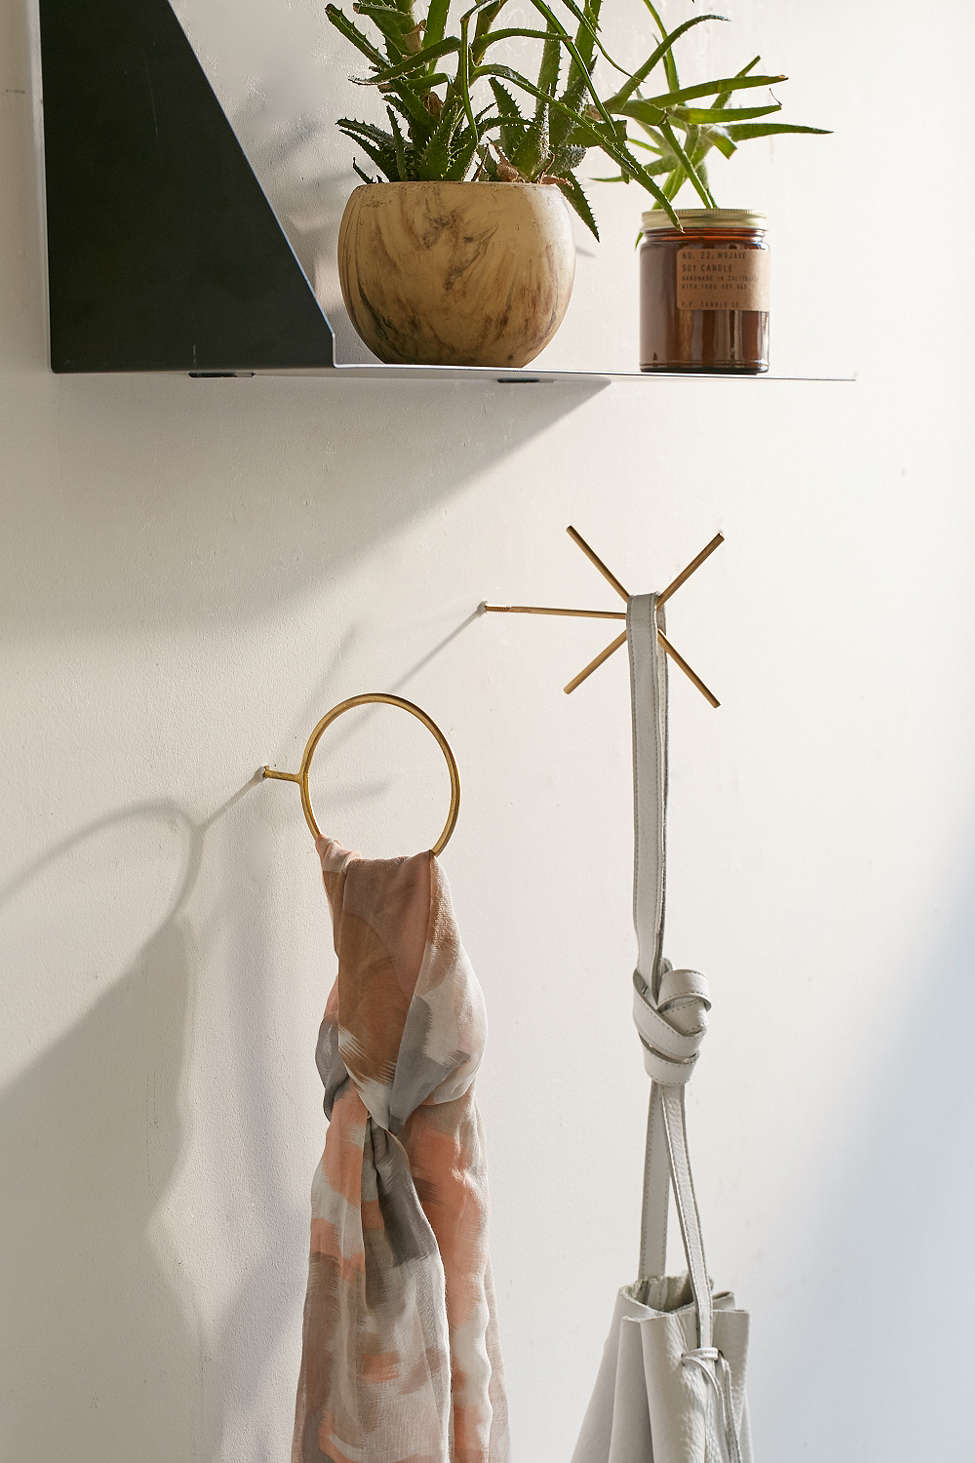 X and O wall hooks from Urban Outfitters